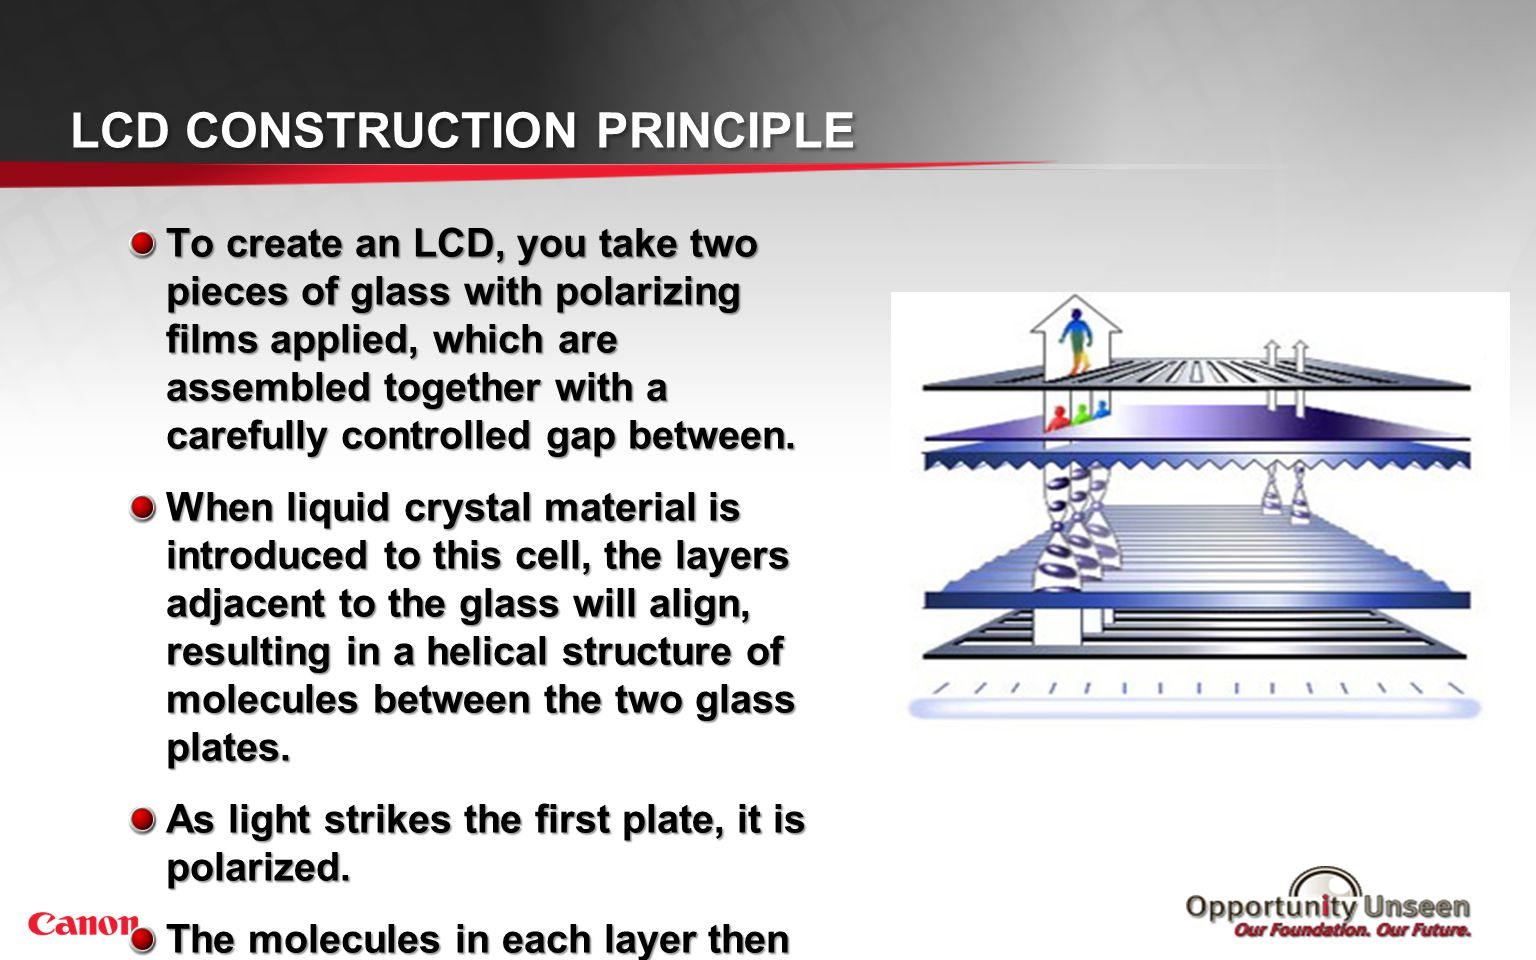 LCD Construction Principle